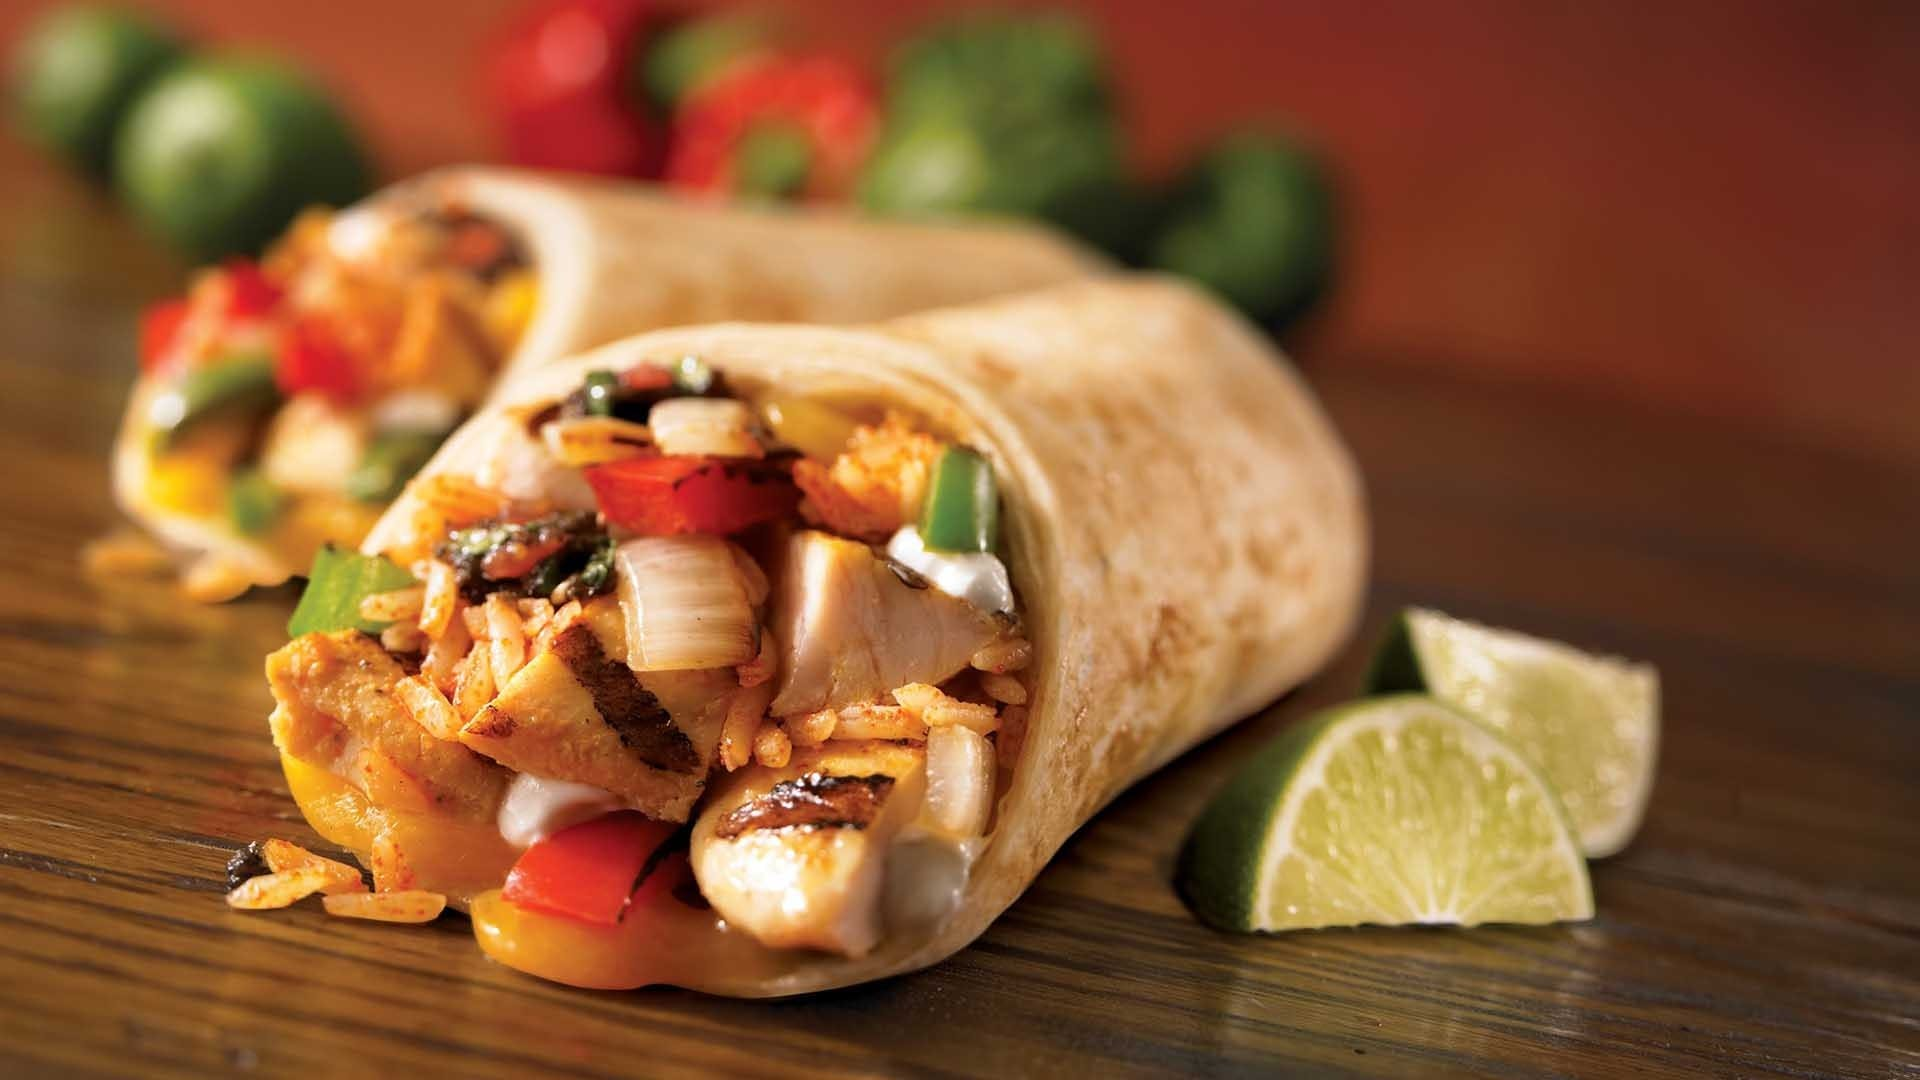 burrito, chicken, delicious